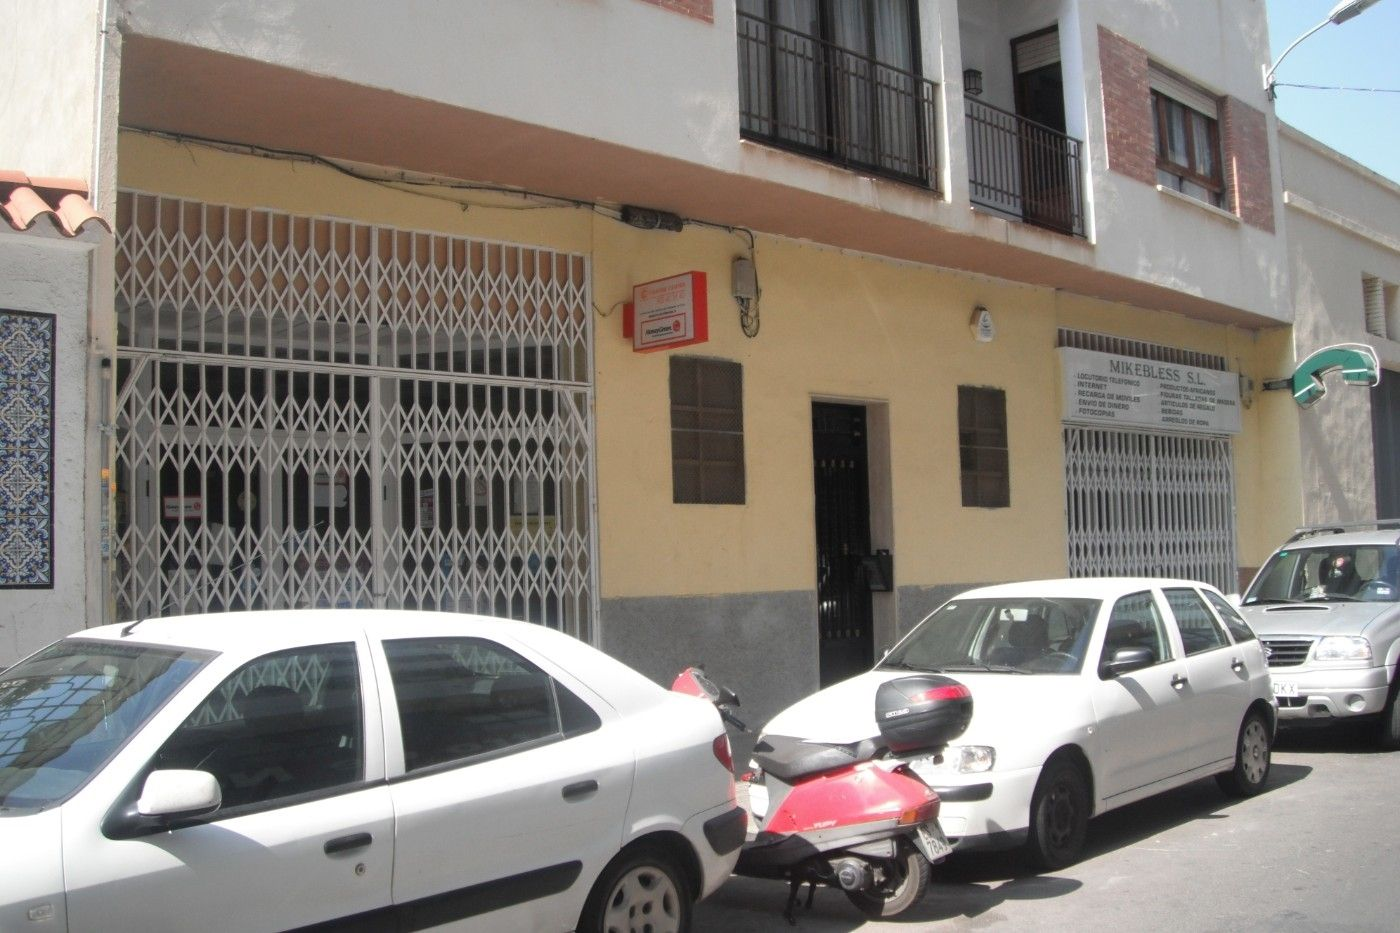 Local Comercial  Calle villafames. Oportunidad. amplio local